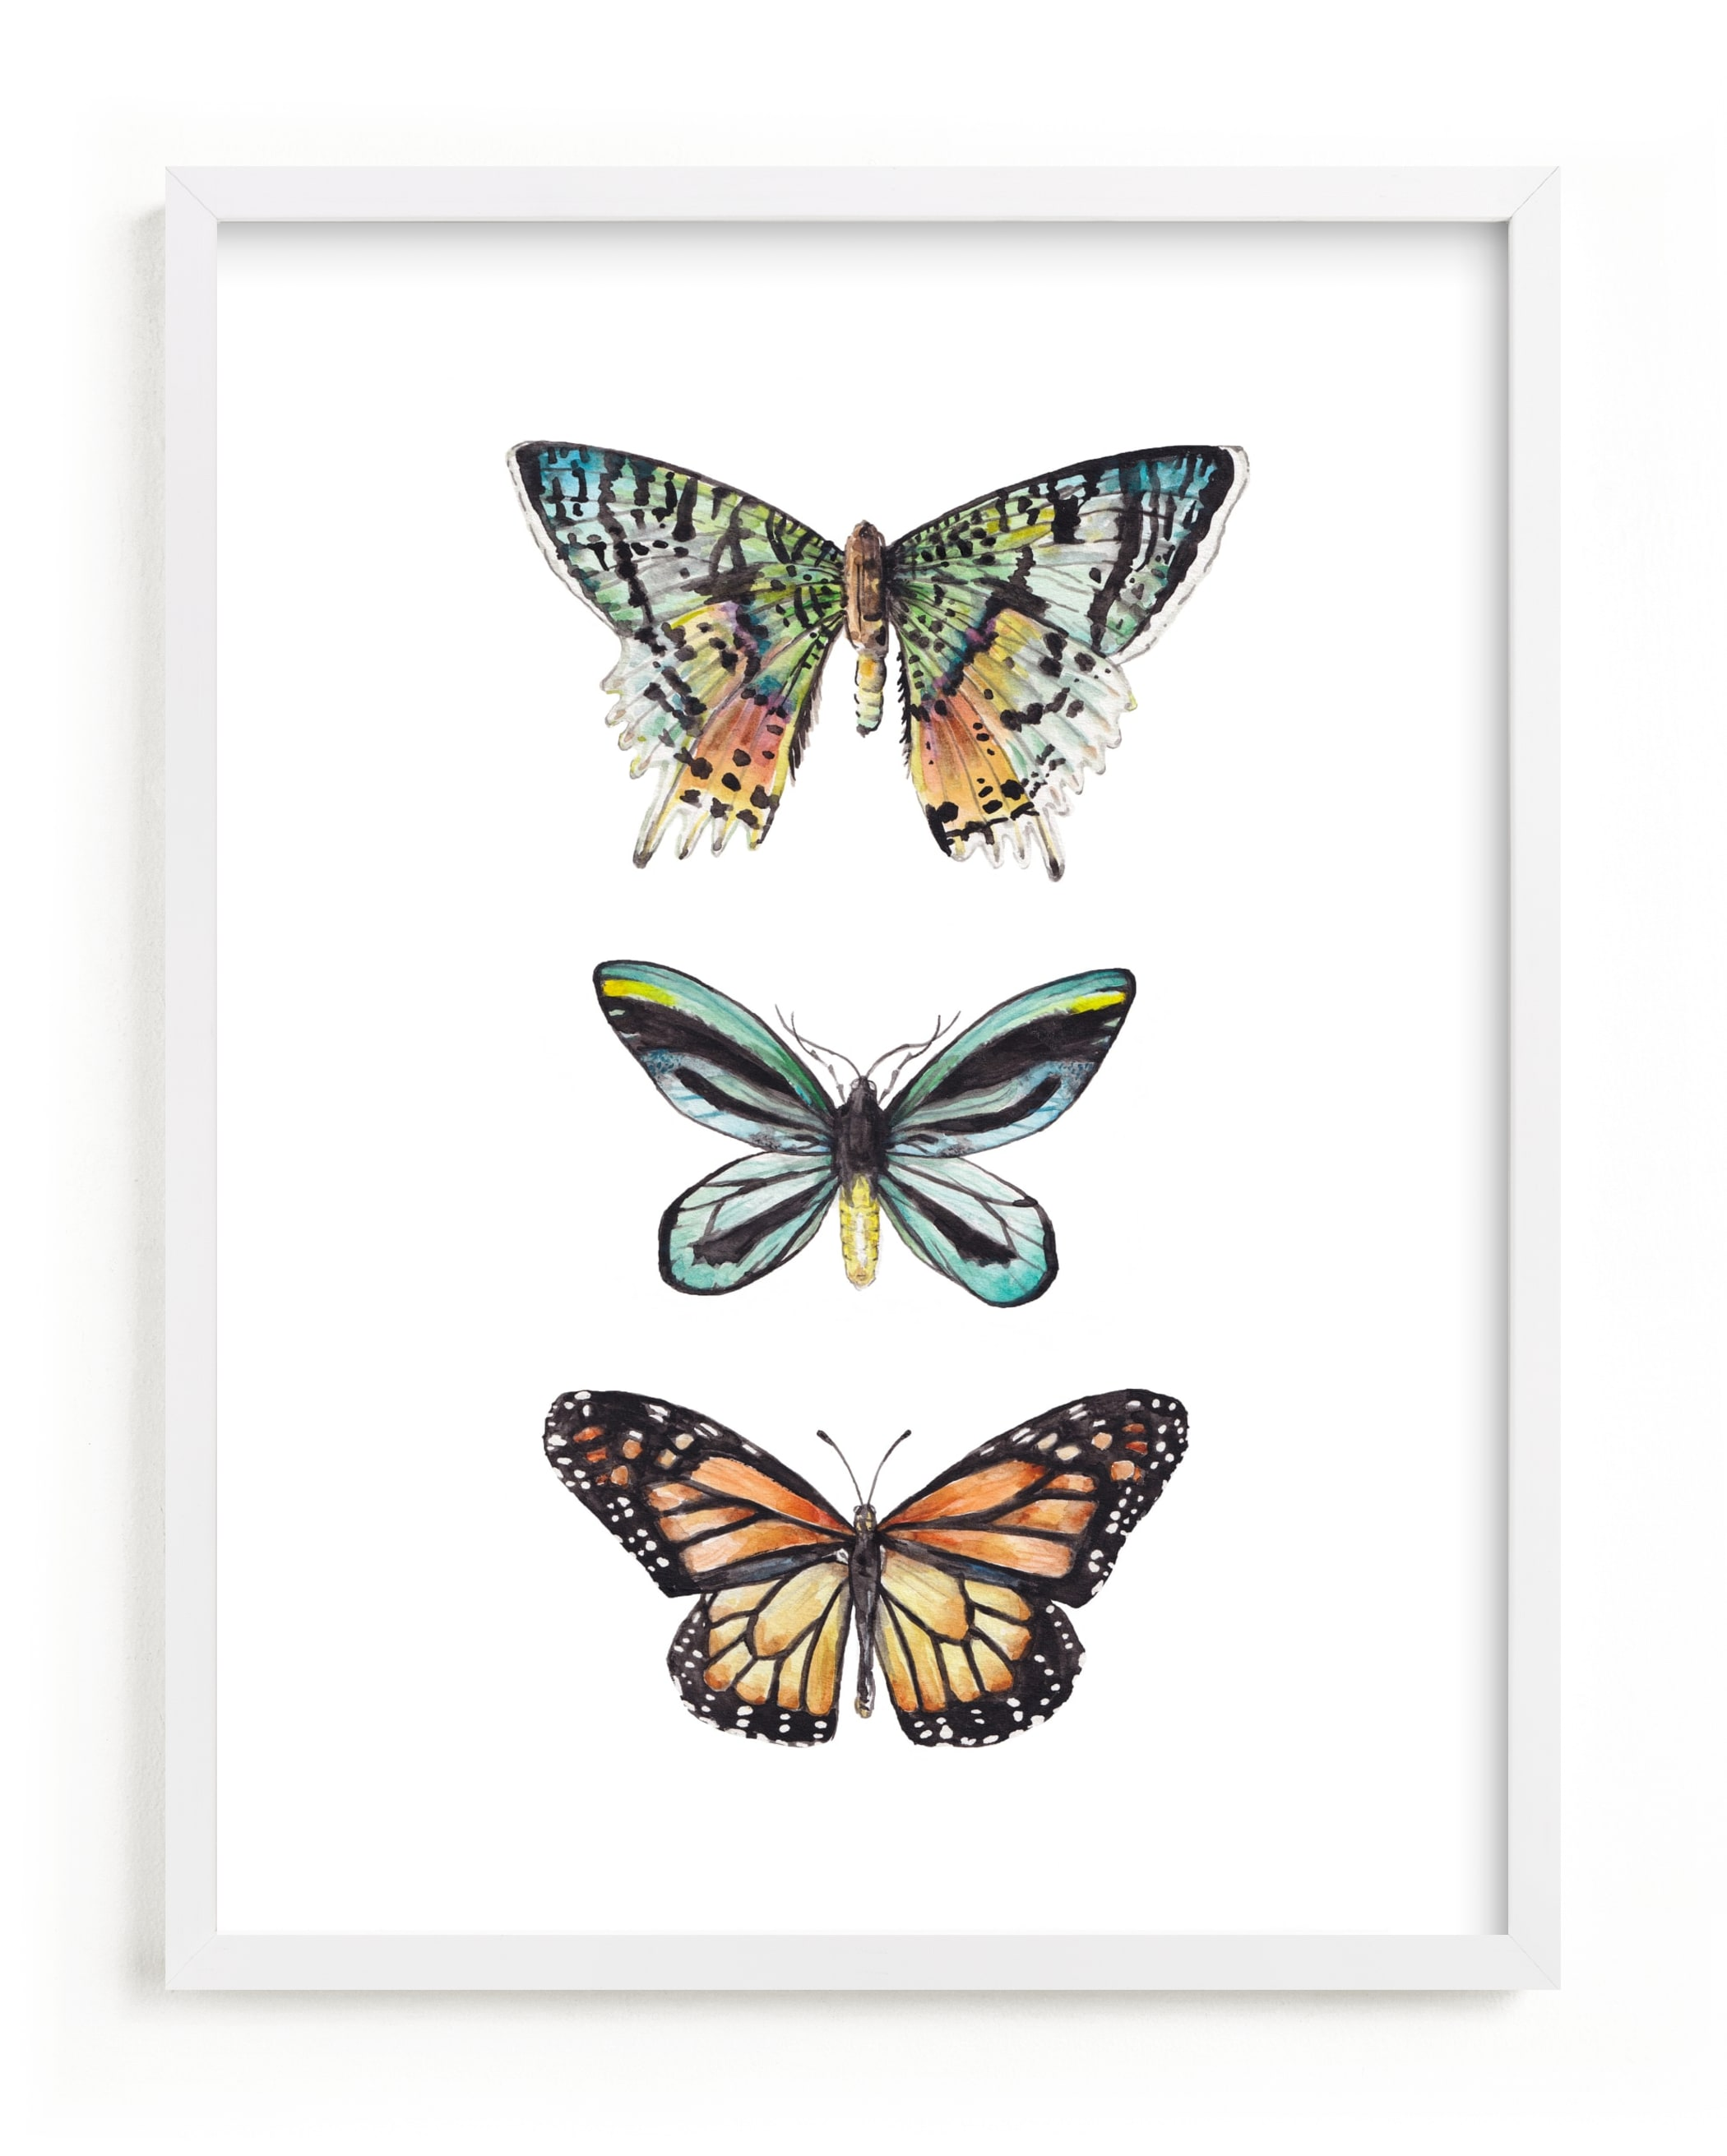 """Butterfly Colorful Watercolors"" - Limited Edition Art Print by Lauren Rogoff in beautiful frame options and a variety of sizes."